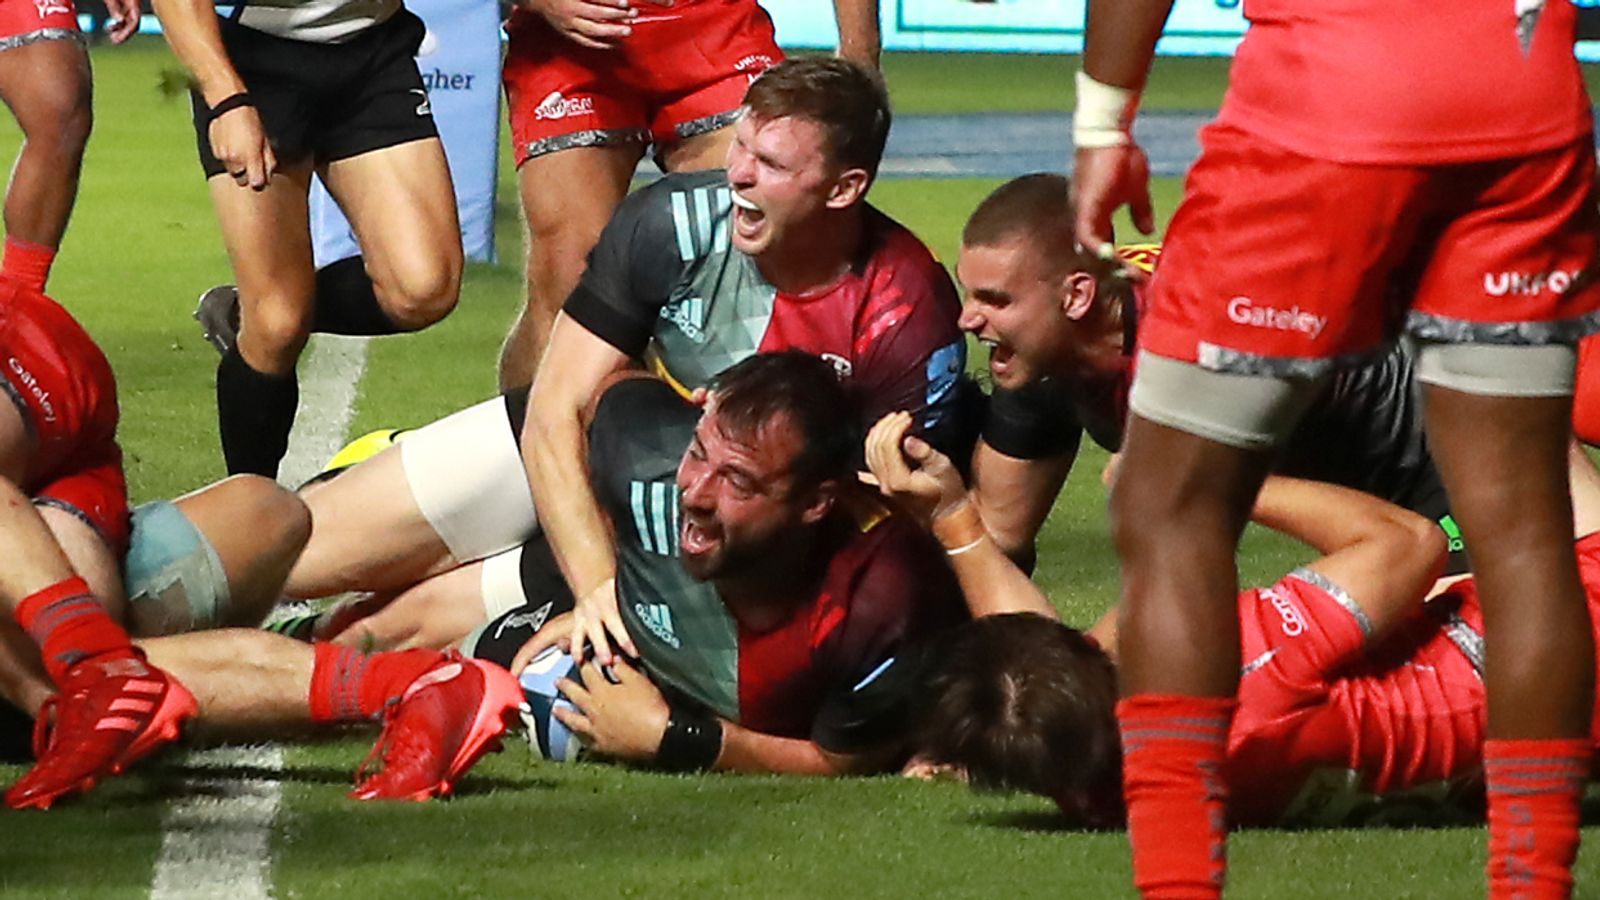 Harlequins 16-10 Sale: Quins beat Sharks in Gallagher Premiership restart |  Rugby Union News | Sky Sports